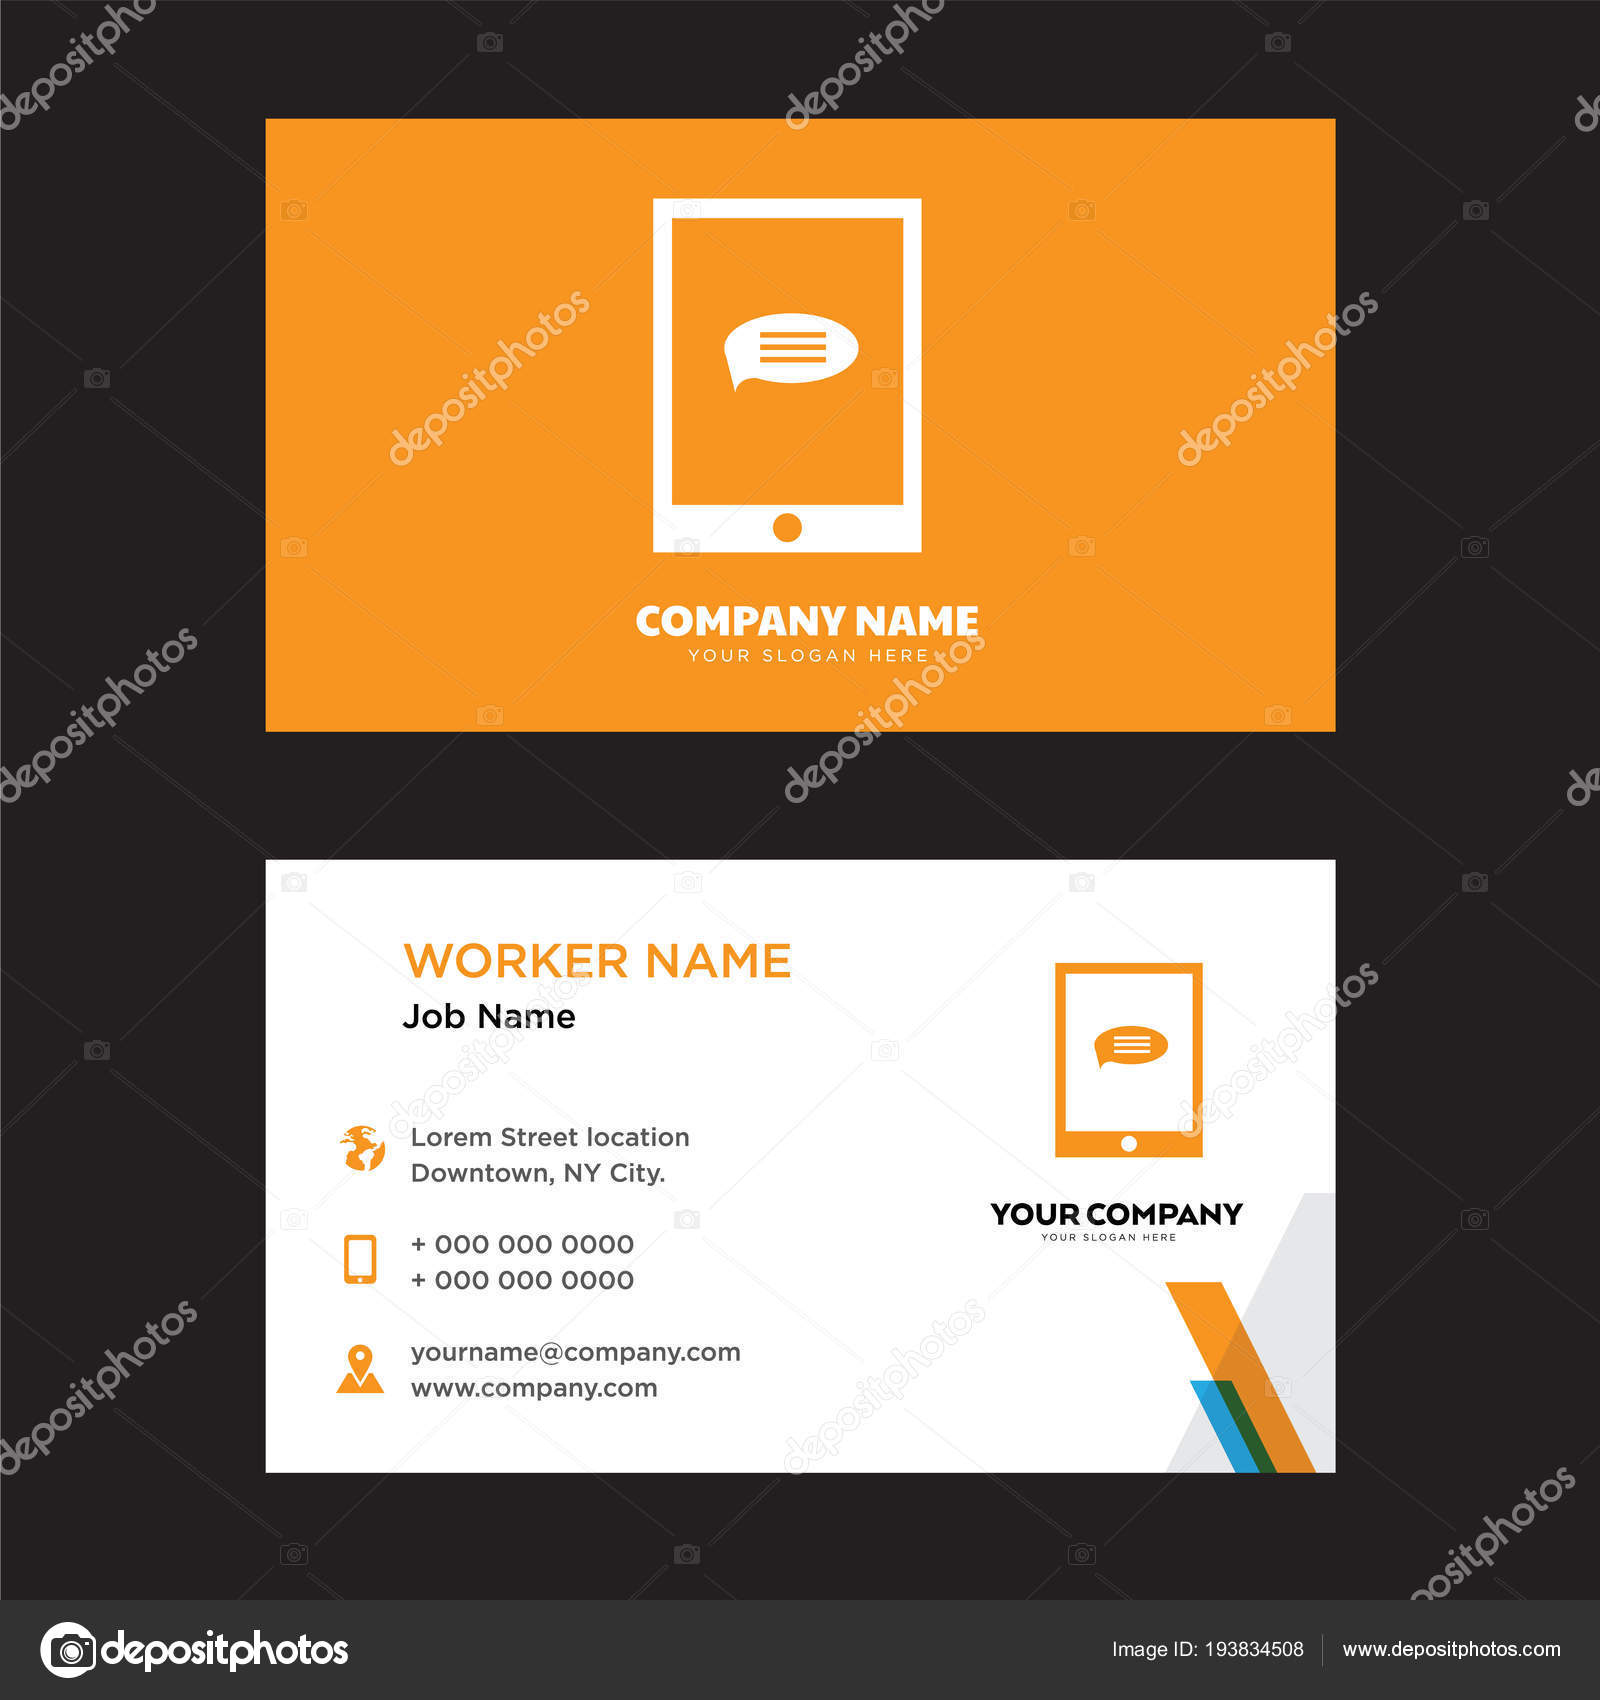 Smartphone Business Card Design Template Visiting For Your Company Modern Creative And Clean Identity Vector By Best